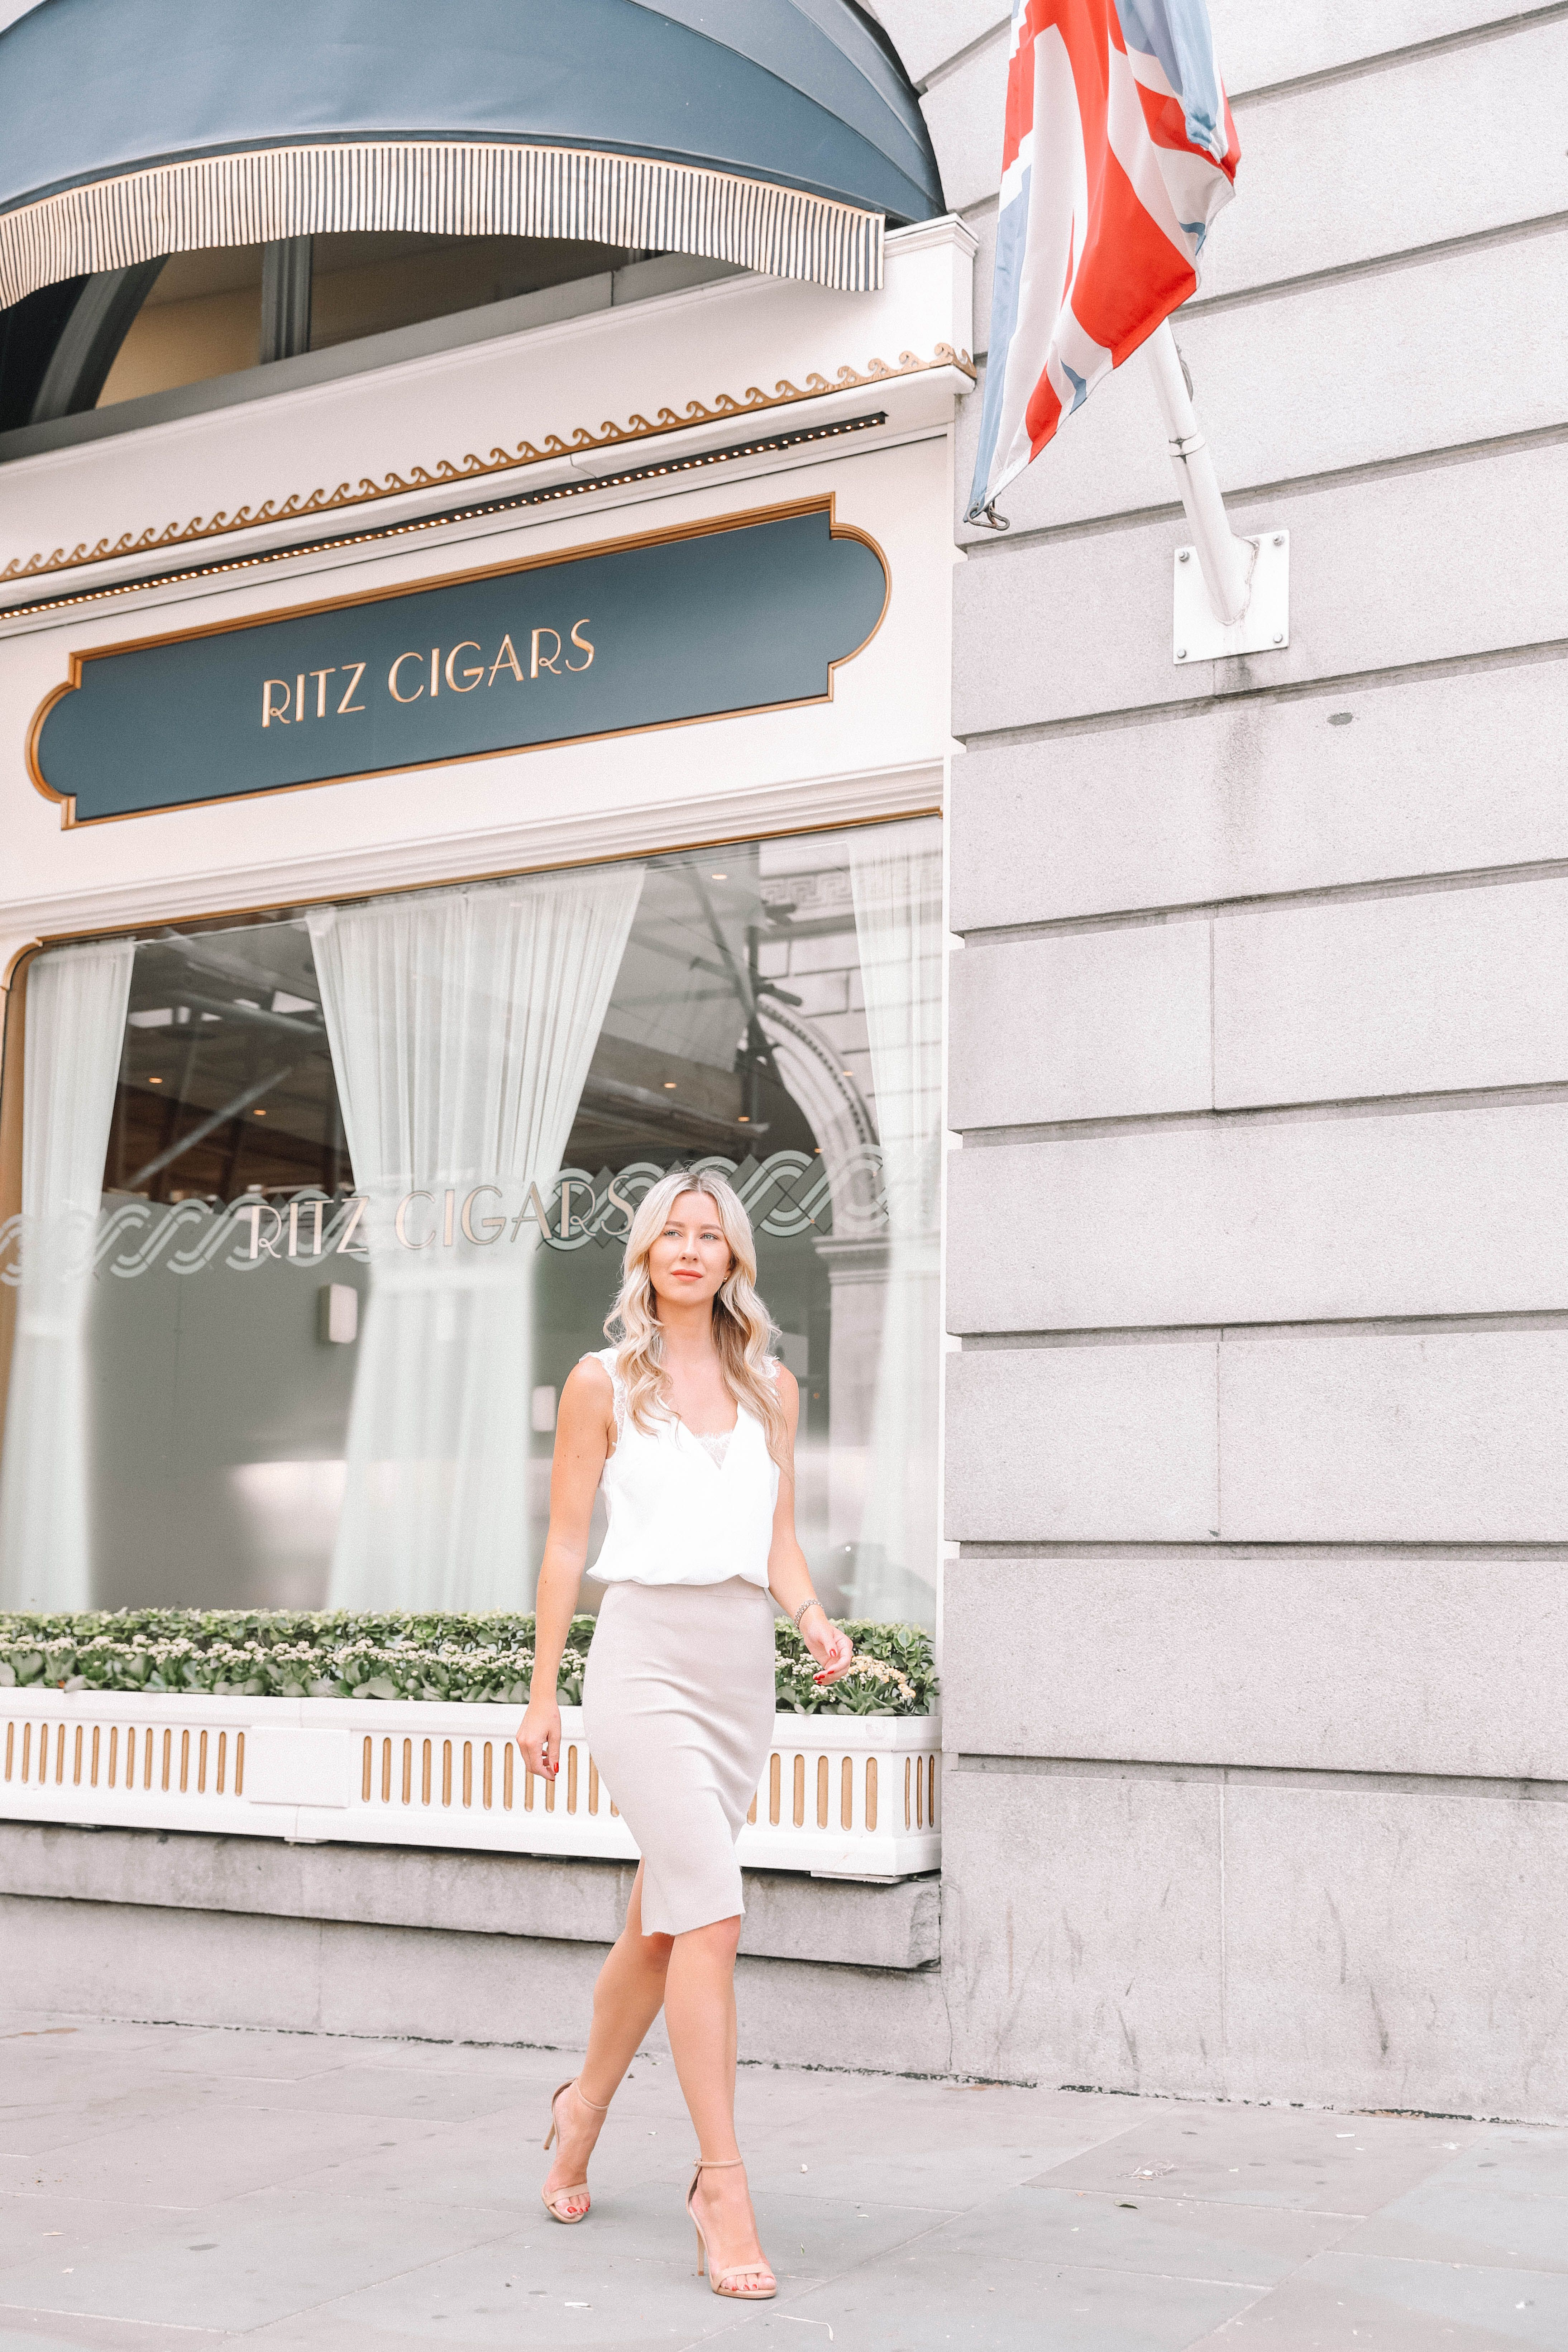 218e432cf3 she goes wear reiss KNITTED PENCIL SKIRT NEUTRAL nude cream knitted white  lace vest top asos the ritz london louboutin pigalle heels workwear blogger  office ...